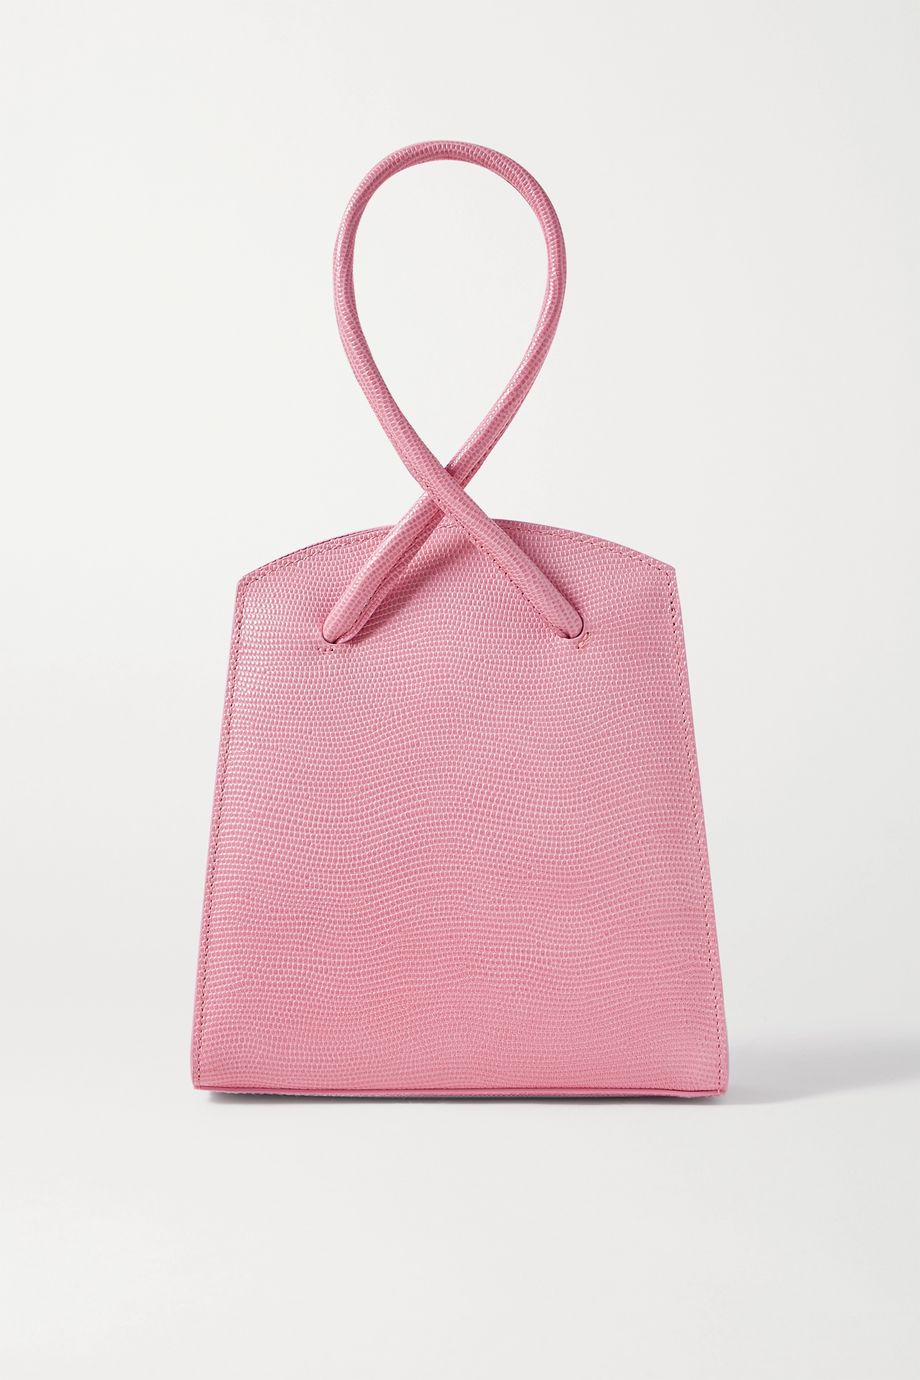 Little Liffner Twisted small lizard-effect leather tote